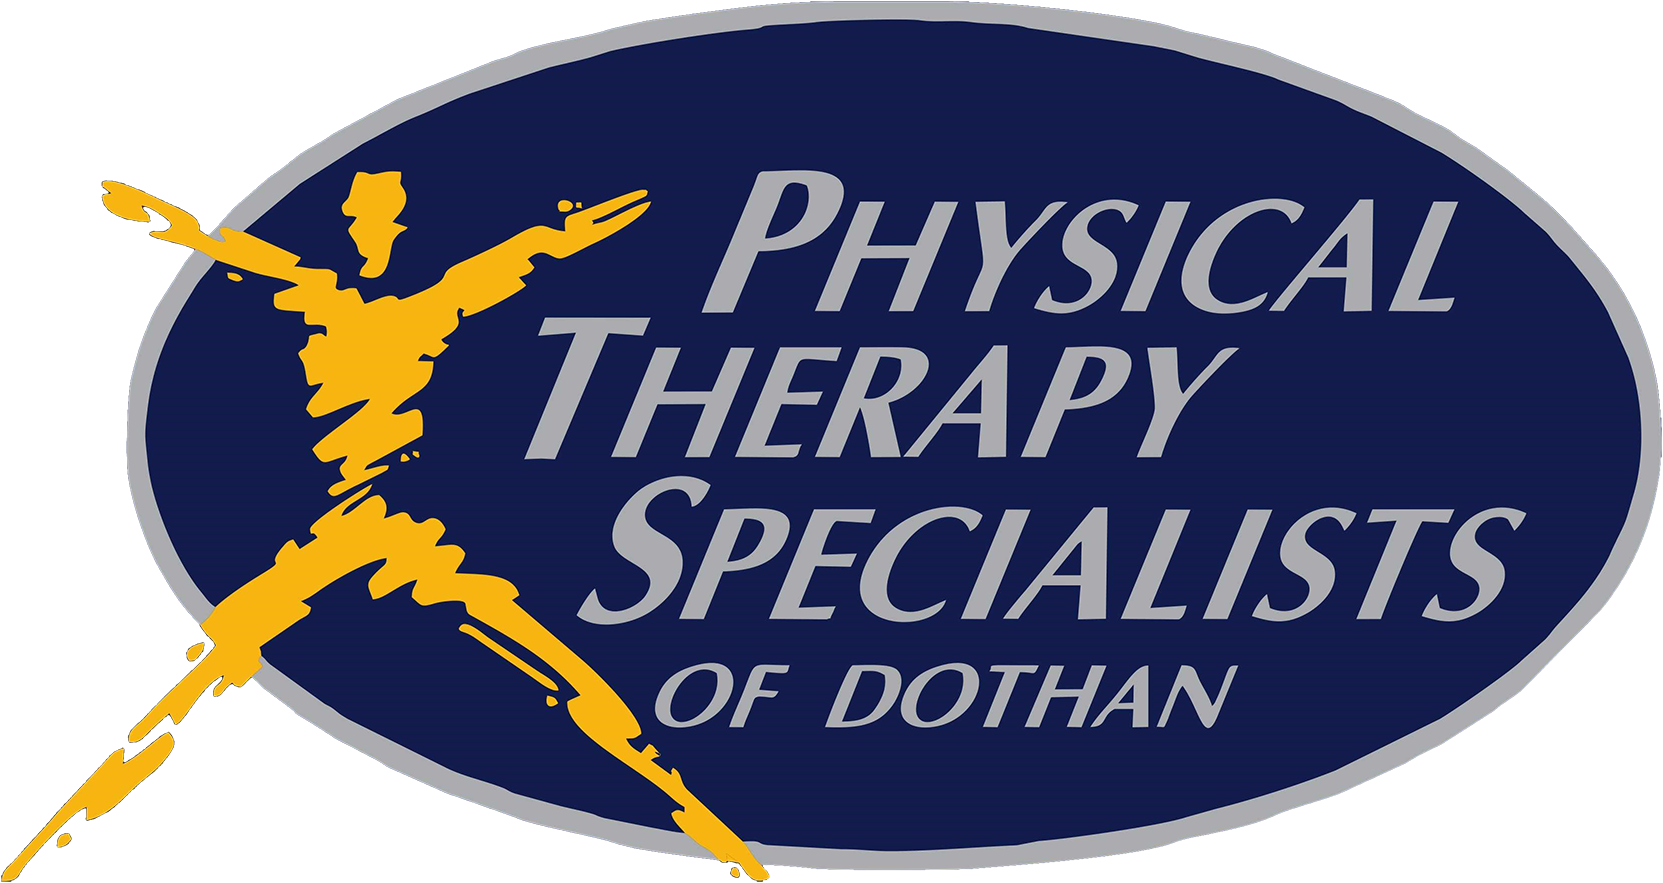 Physical Therapy Specialists of Dothan